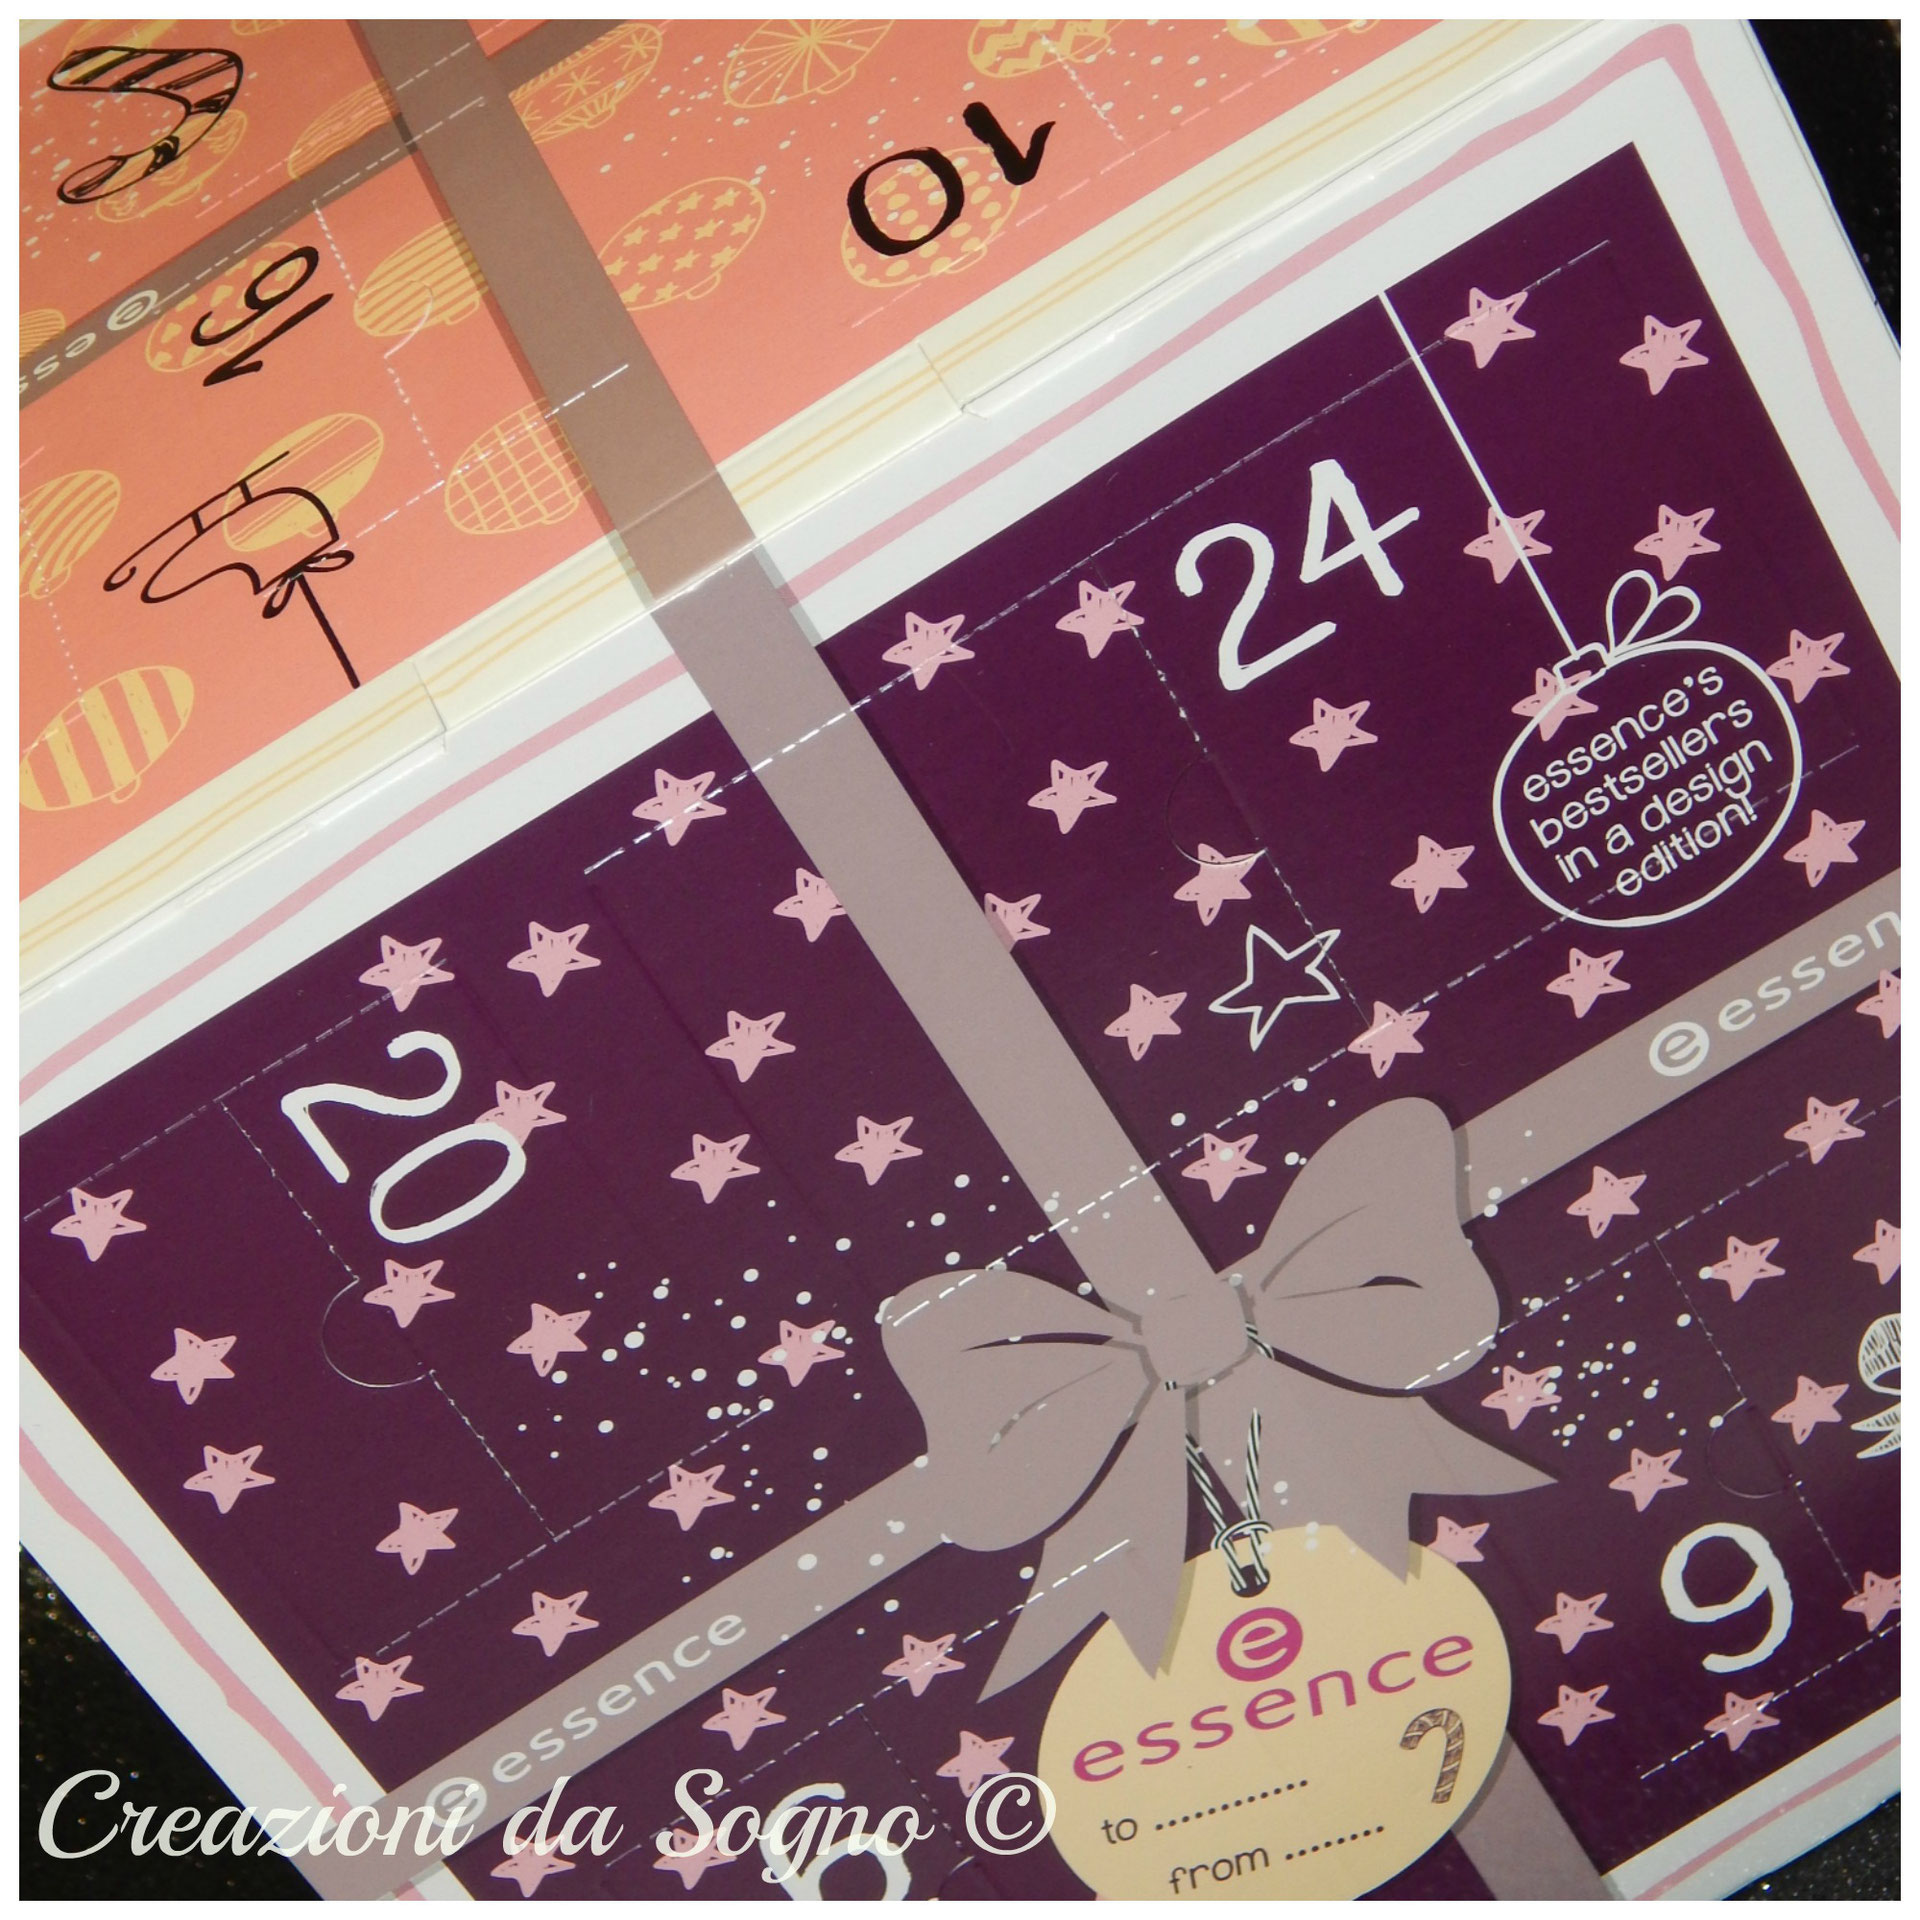 Calendario Avvento Essence.Calendario Dell Avvento Essence 2016 Recensione Makeup E